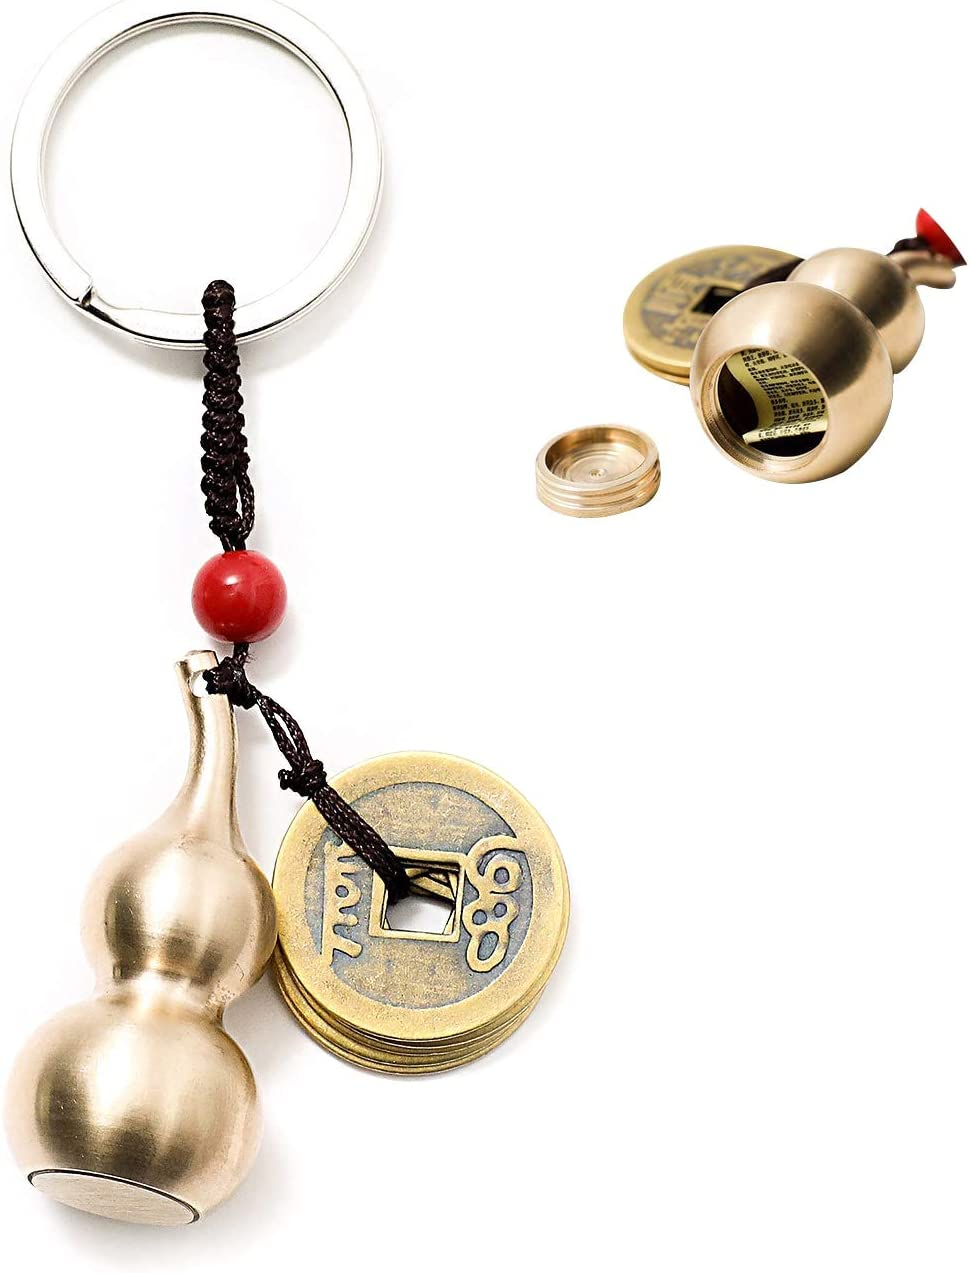 GJMY Feng Shui Coins with Brass Calabash Wu Lou Key Chain for Longevity Travel Safely Wealth Porsperity Success and Good Luck with Blessing Paper in it